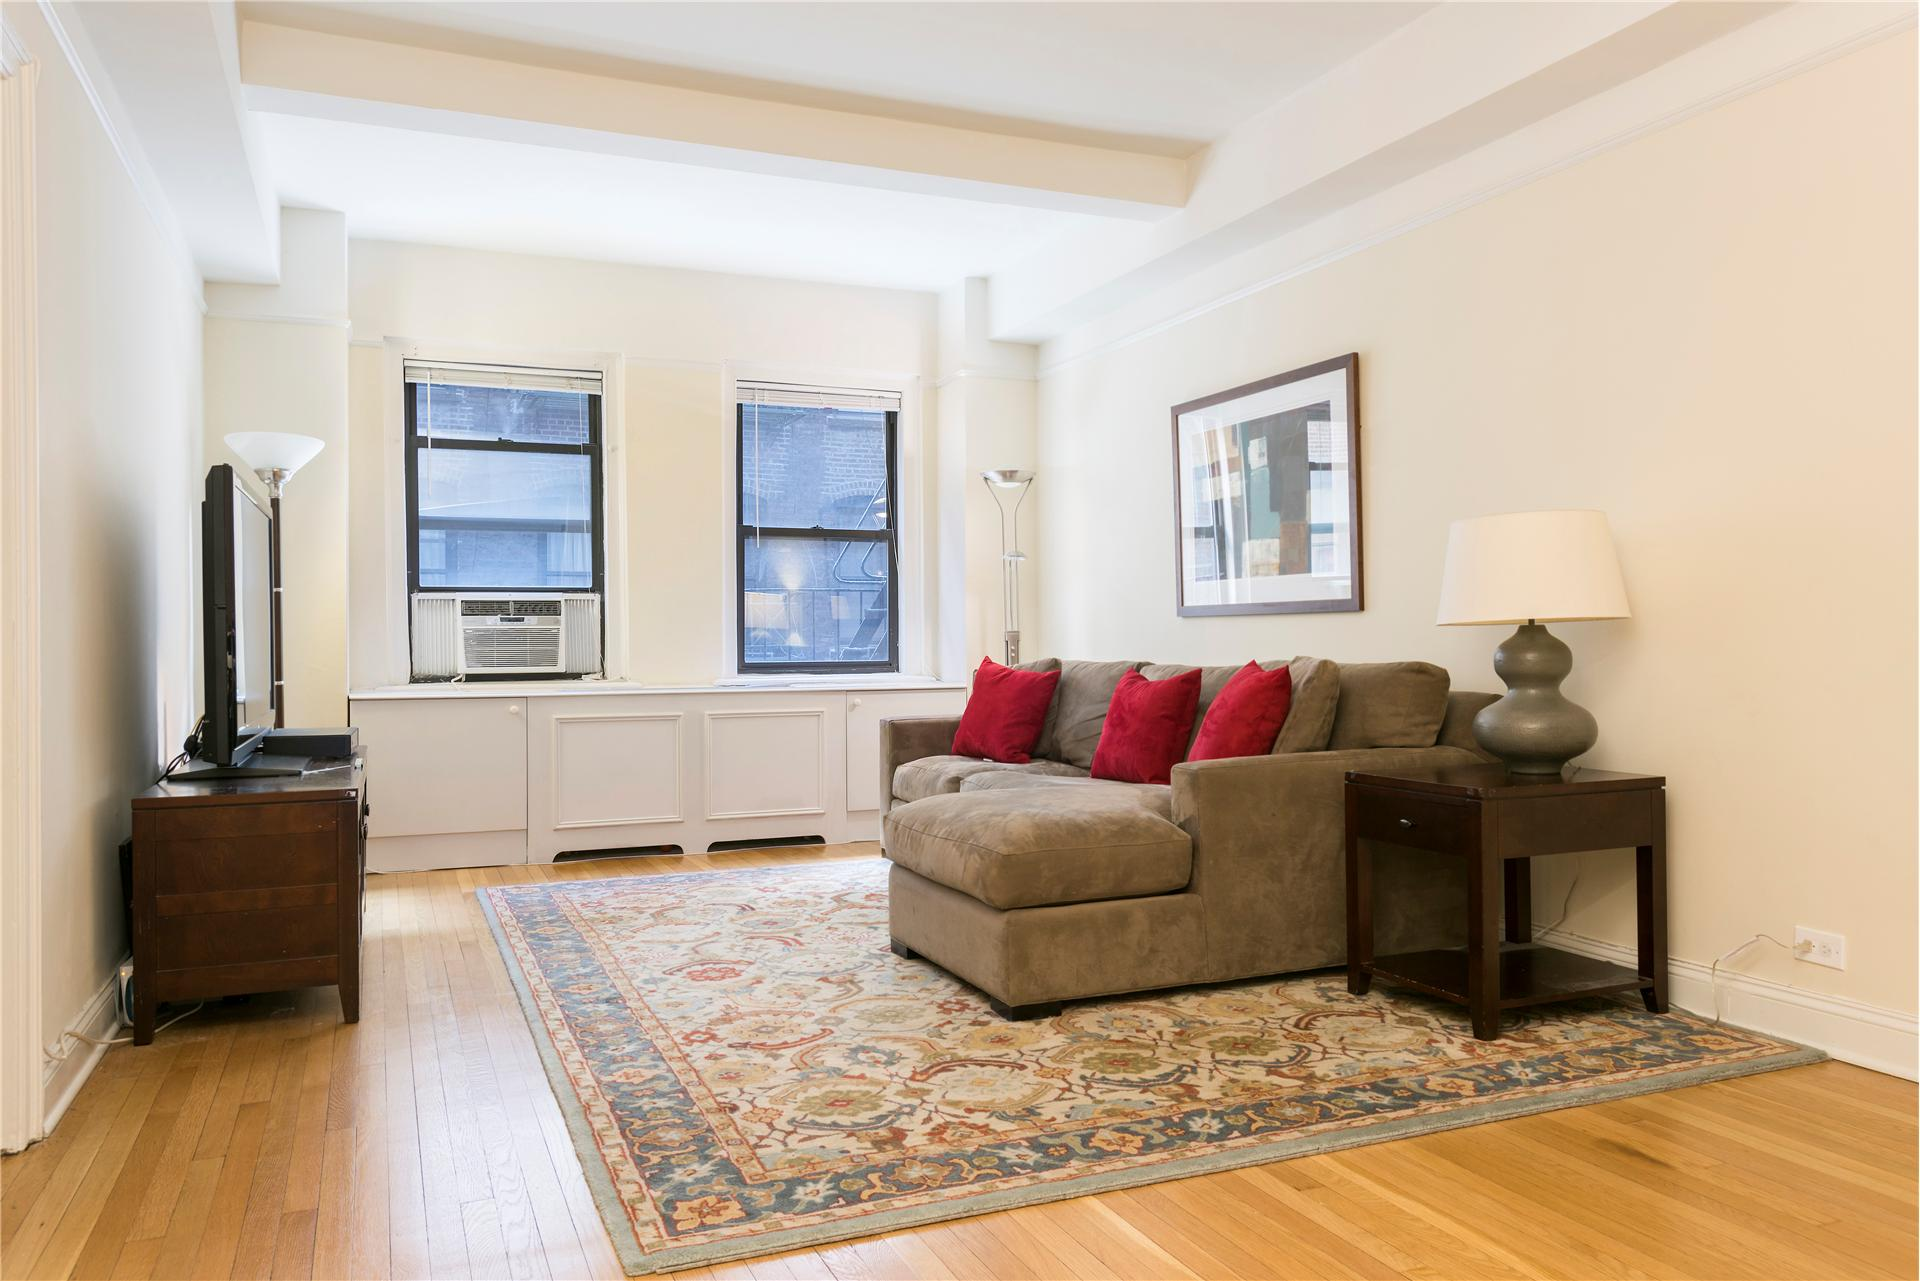 229 EAST 79 LIMITED, 229 East 79th Street, 4F - Upper East Side, New York